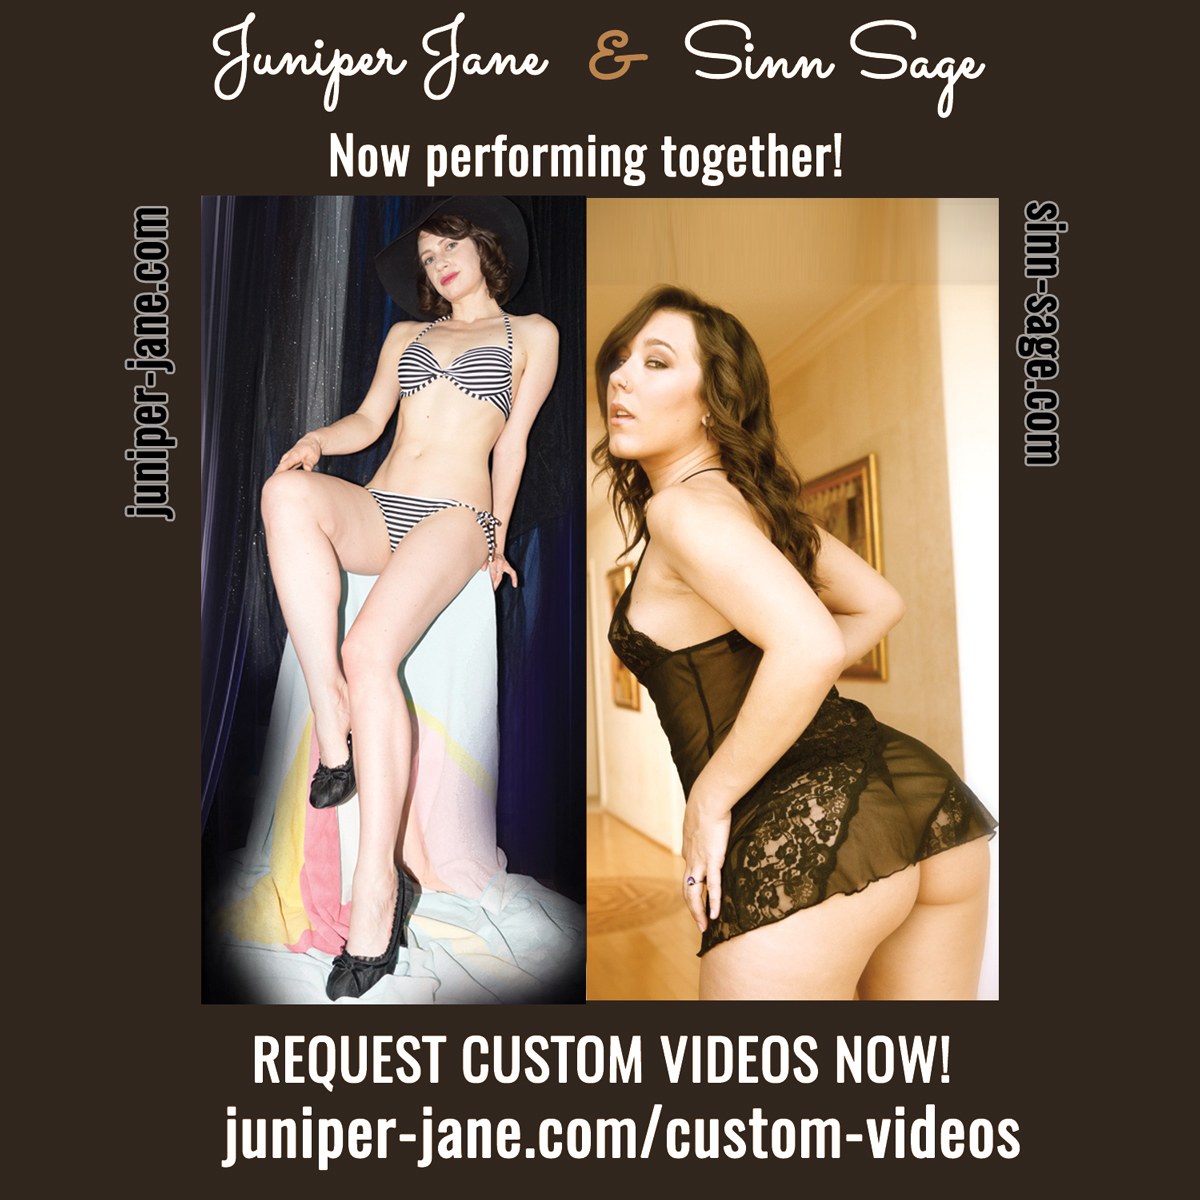 Juniper Jane now performing with Sinn Sage